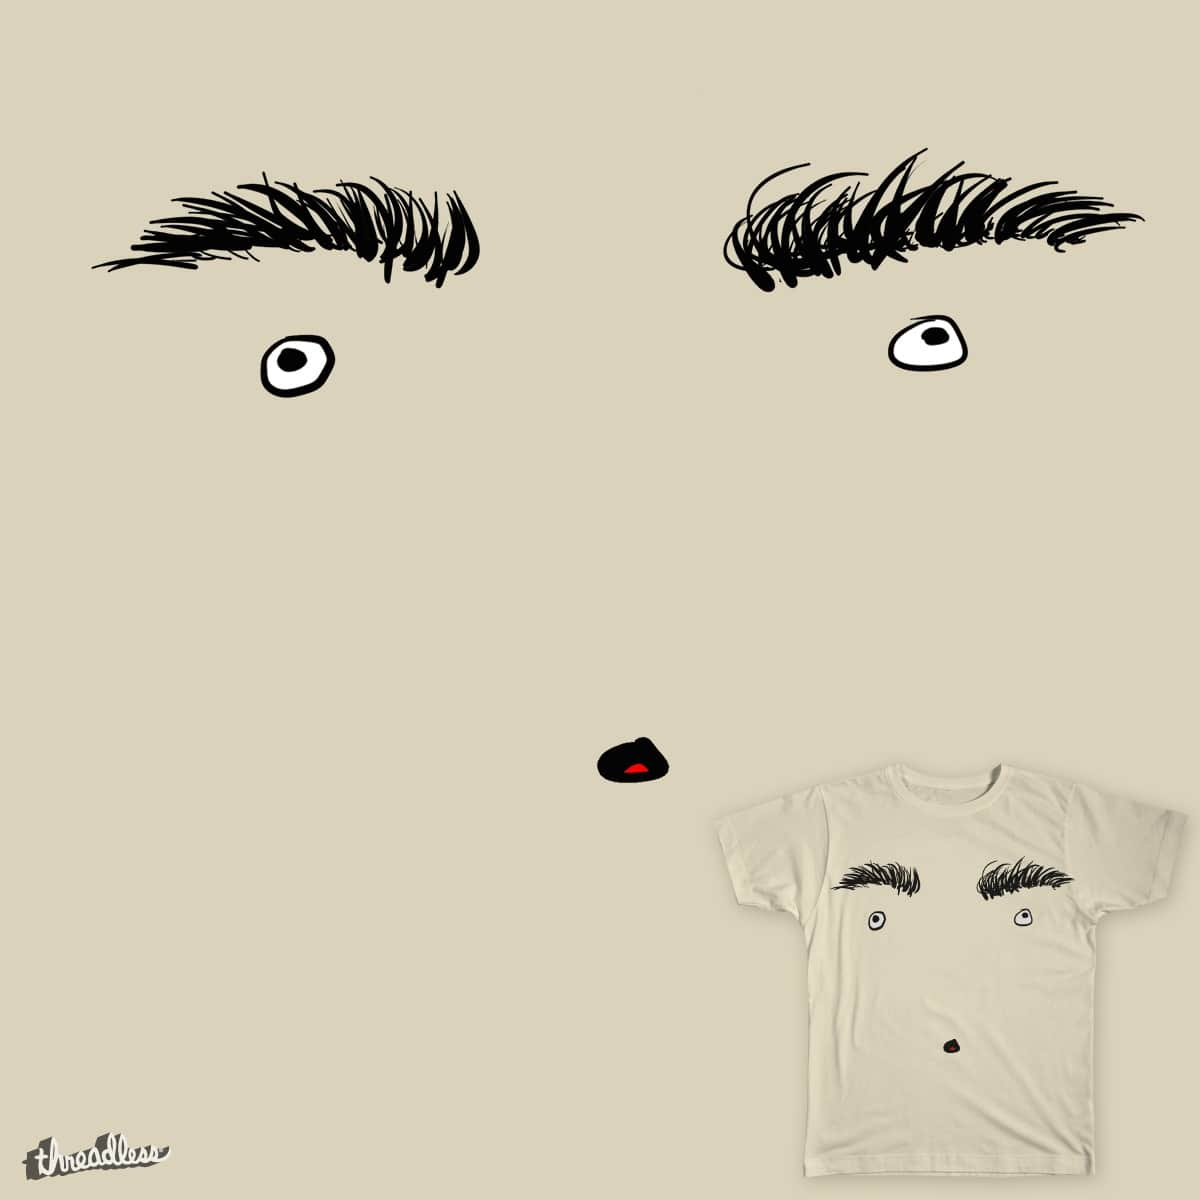 I Am A Face by keenanwoodall on Threadless